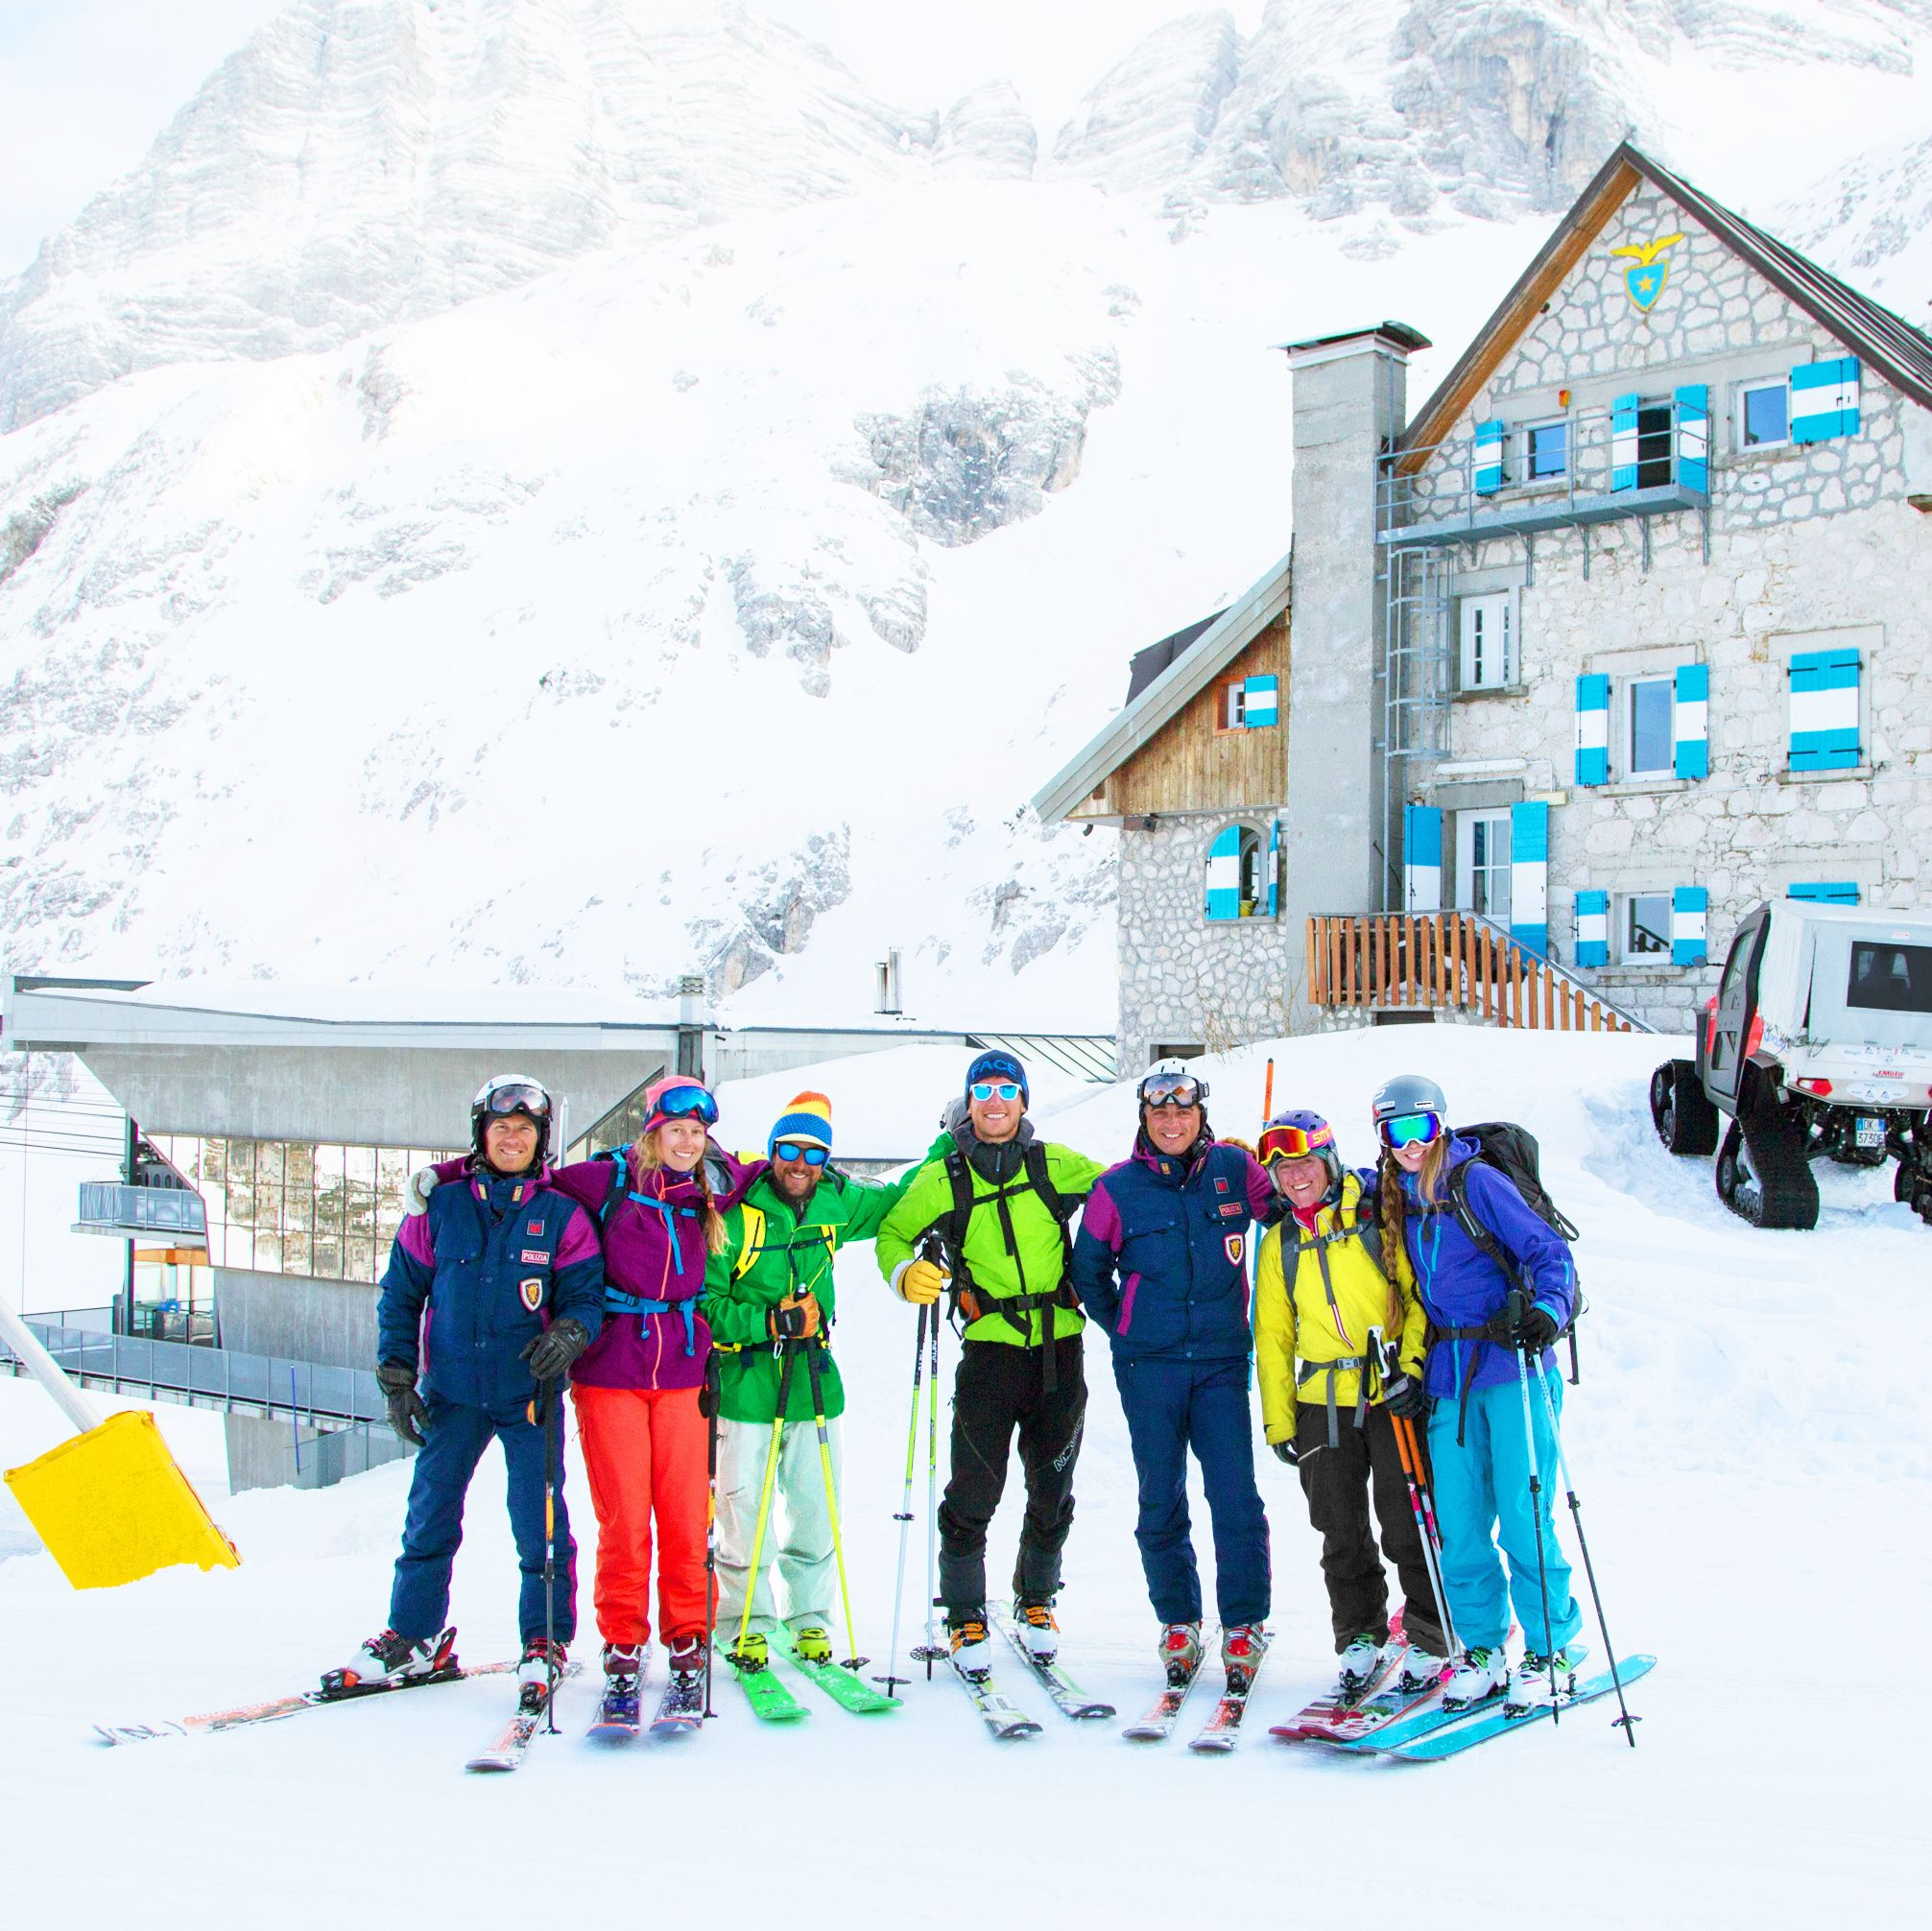 Looks like everyone is enjoying their time on the mountains! #lifedreamsholidays #thelifedreams #mountainholidays #skiing #skiholidays #winterholidays #sunny